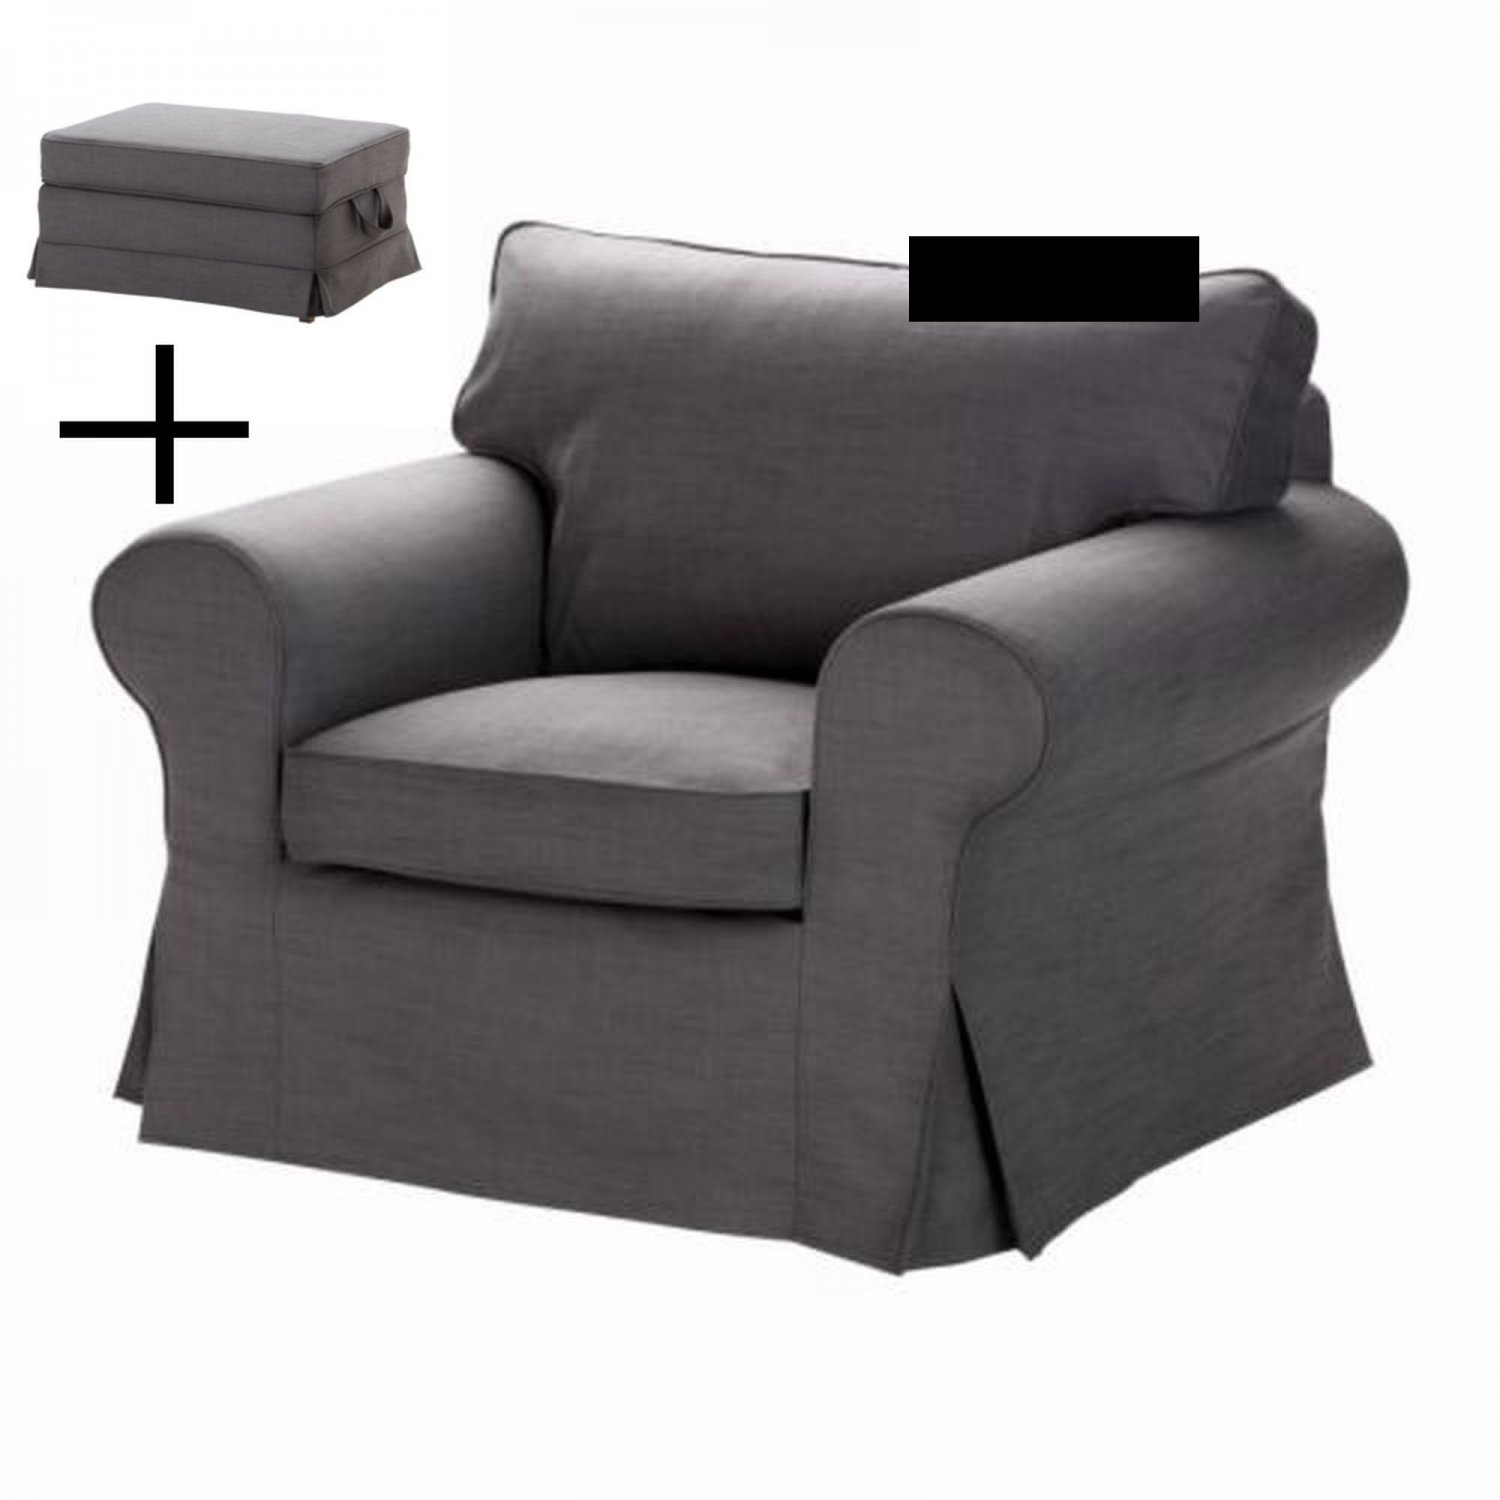 Grey Armchair And Ottoman